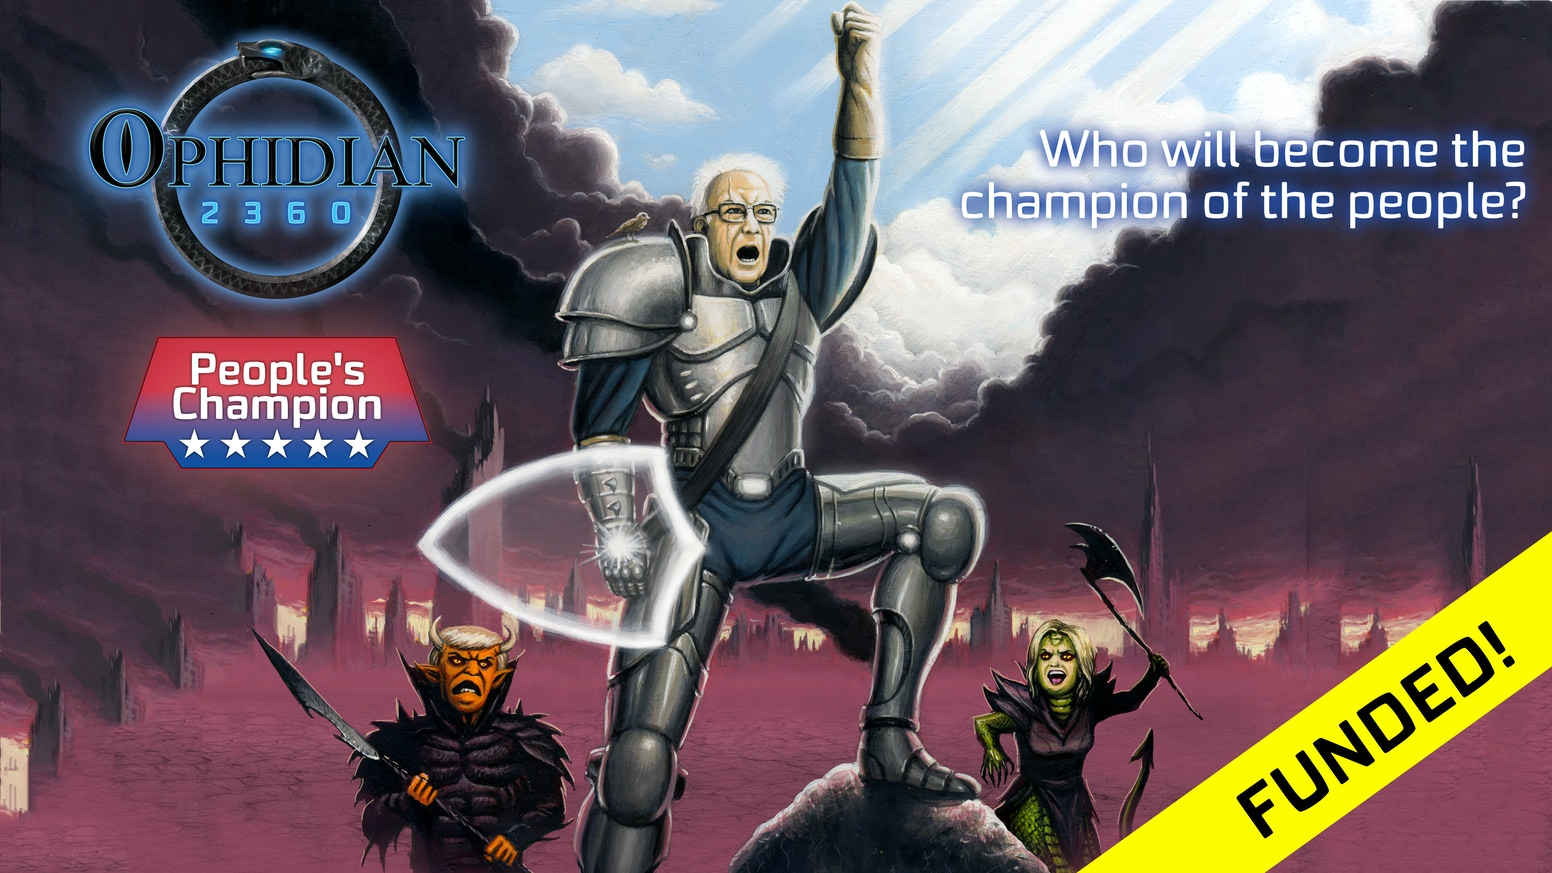 Mini-expansion for the successful Ophidian 2360 Futuristic Gladiator Combat Game!  Original mechanics, great art, nods to 2016 election